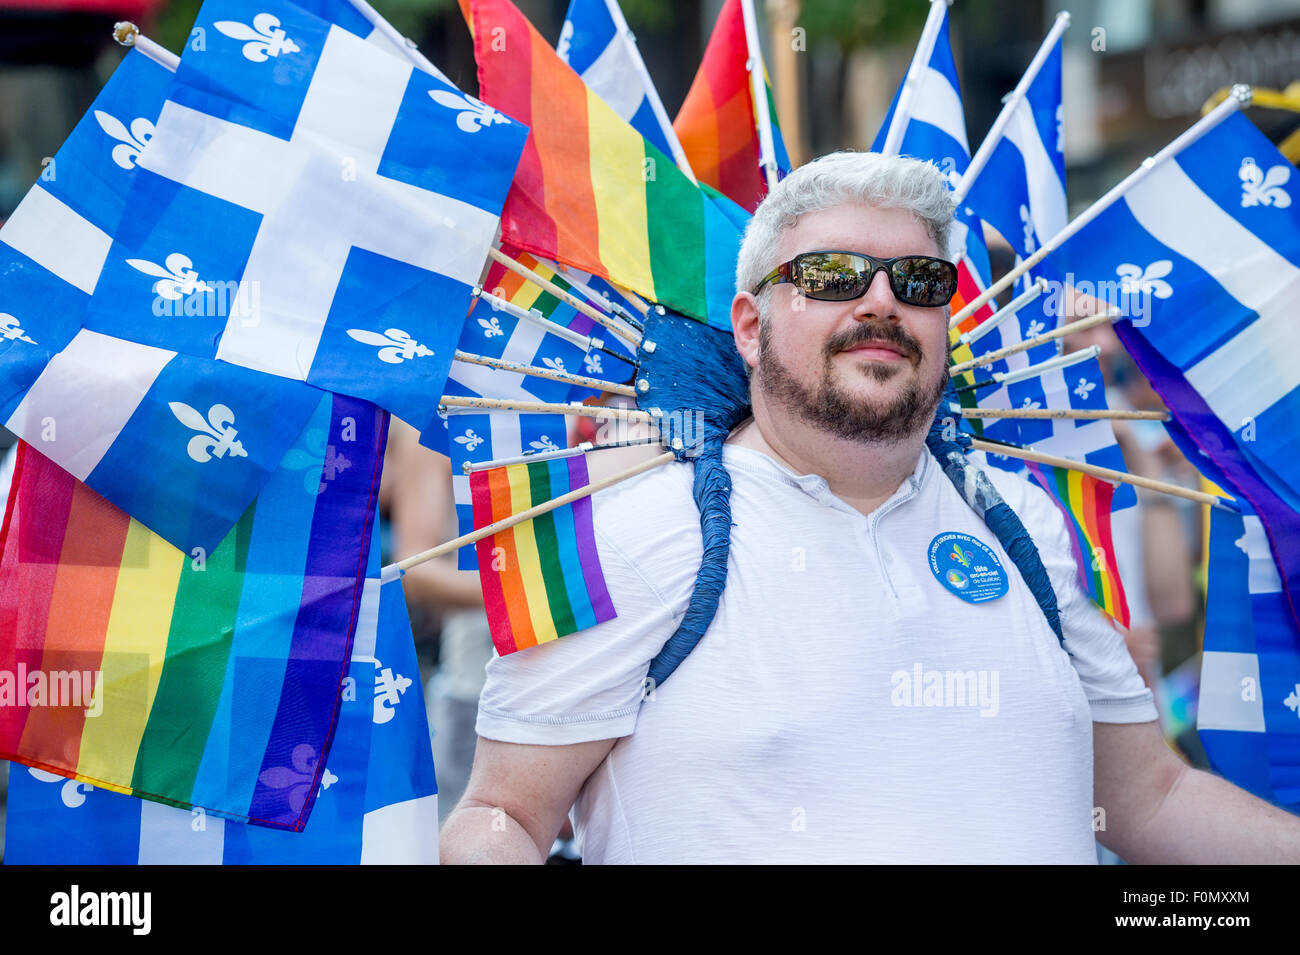 MONTREAL, CANADA, 16th August 2015. A gay participant is carrying many quebec and gay rainbow flags at the 2015 - Stock Image